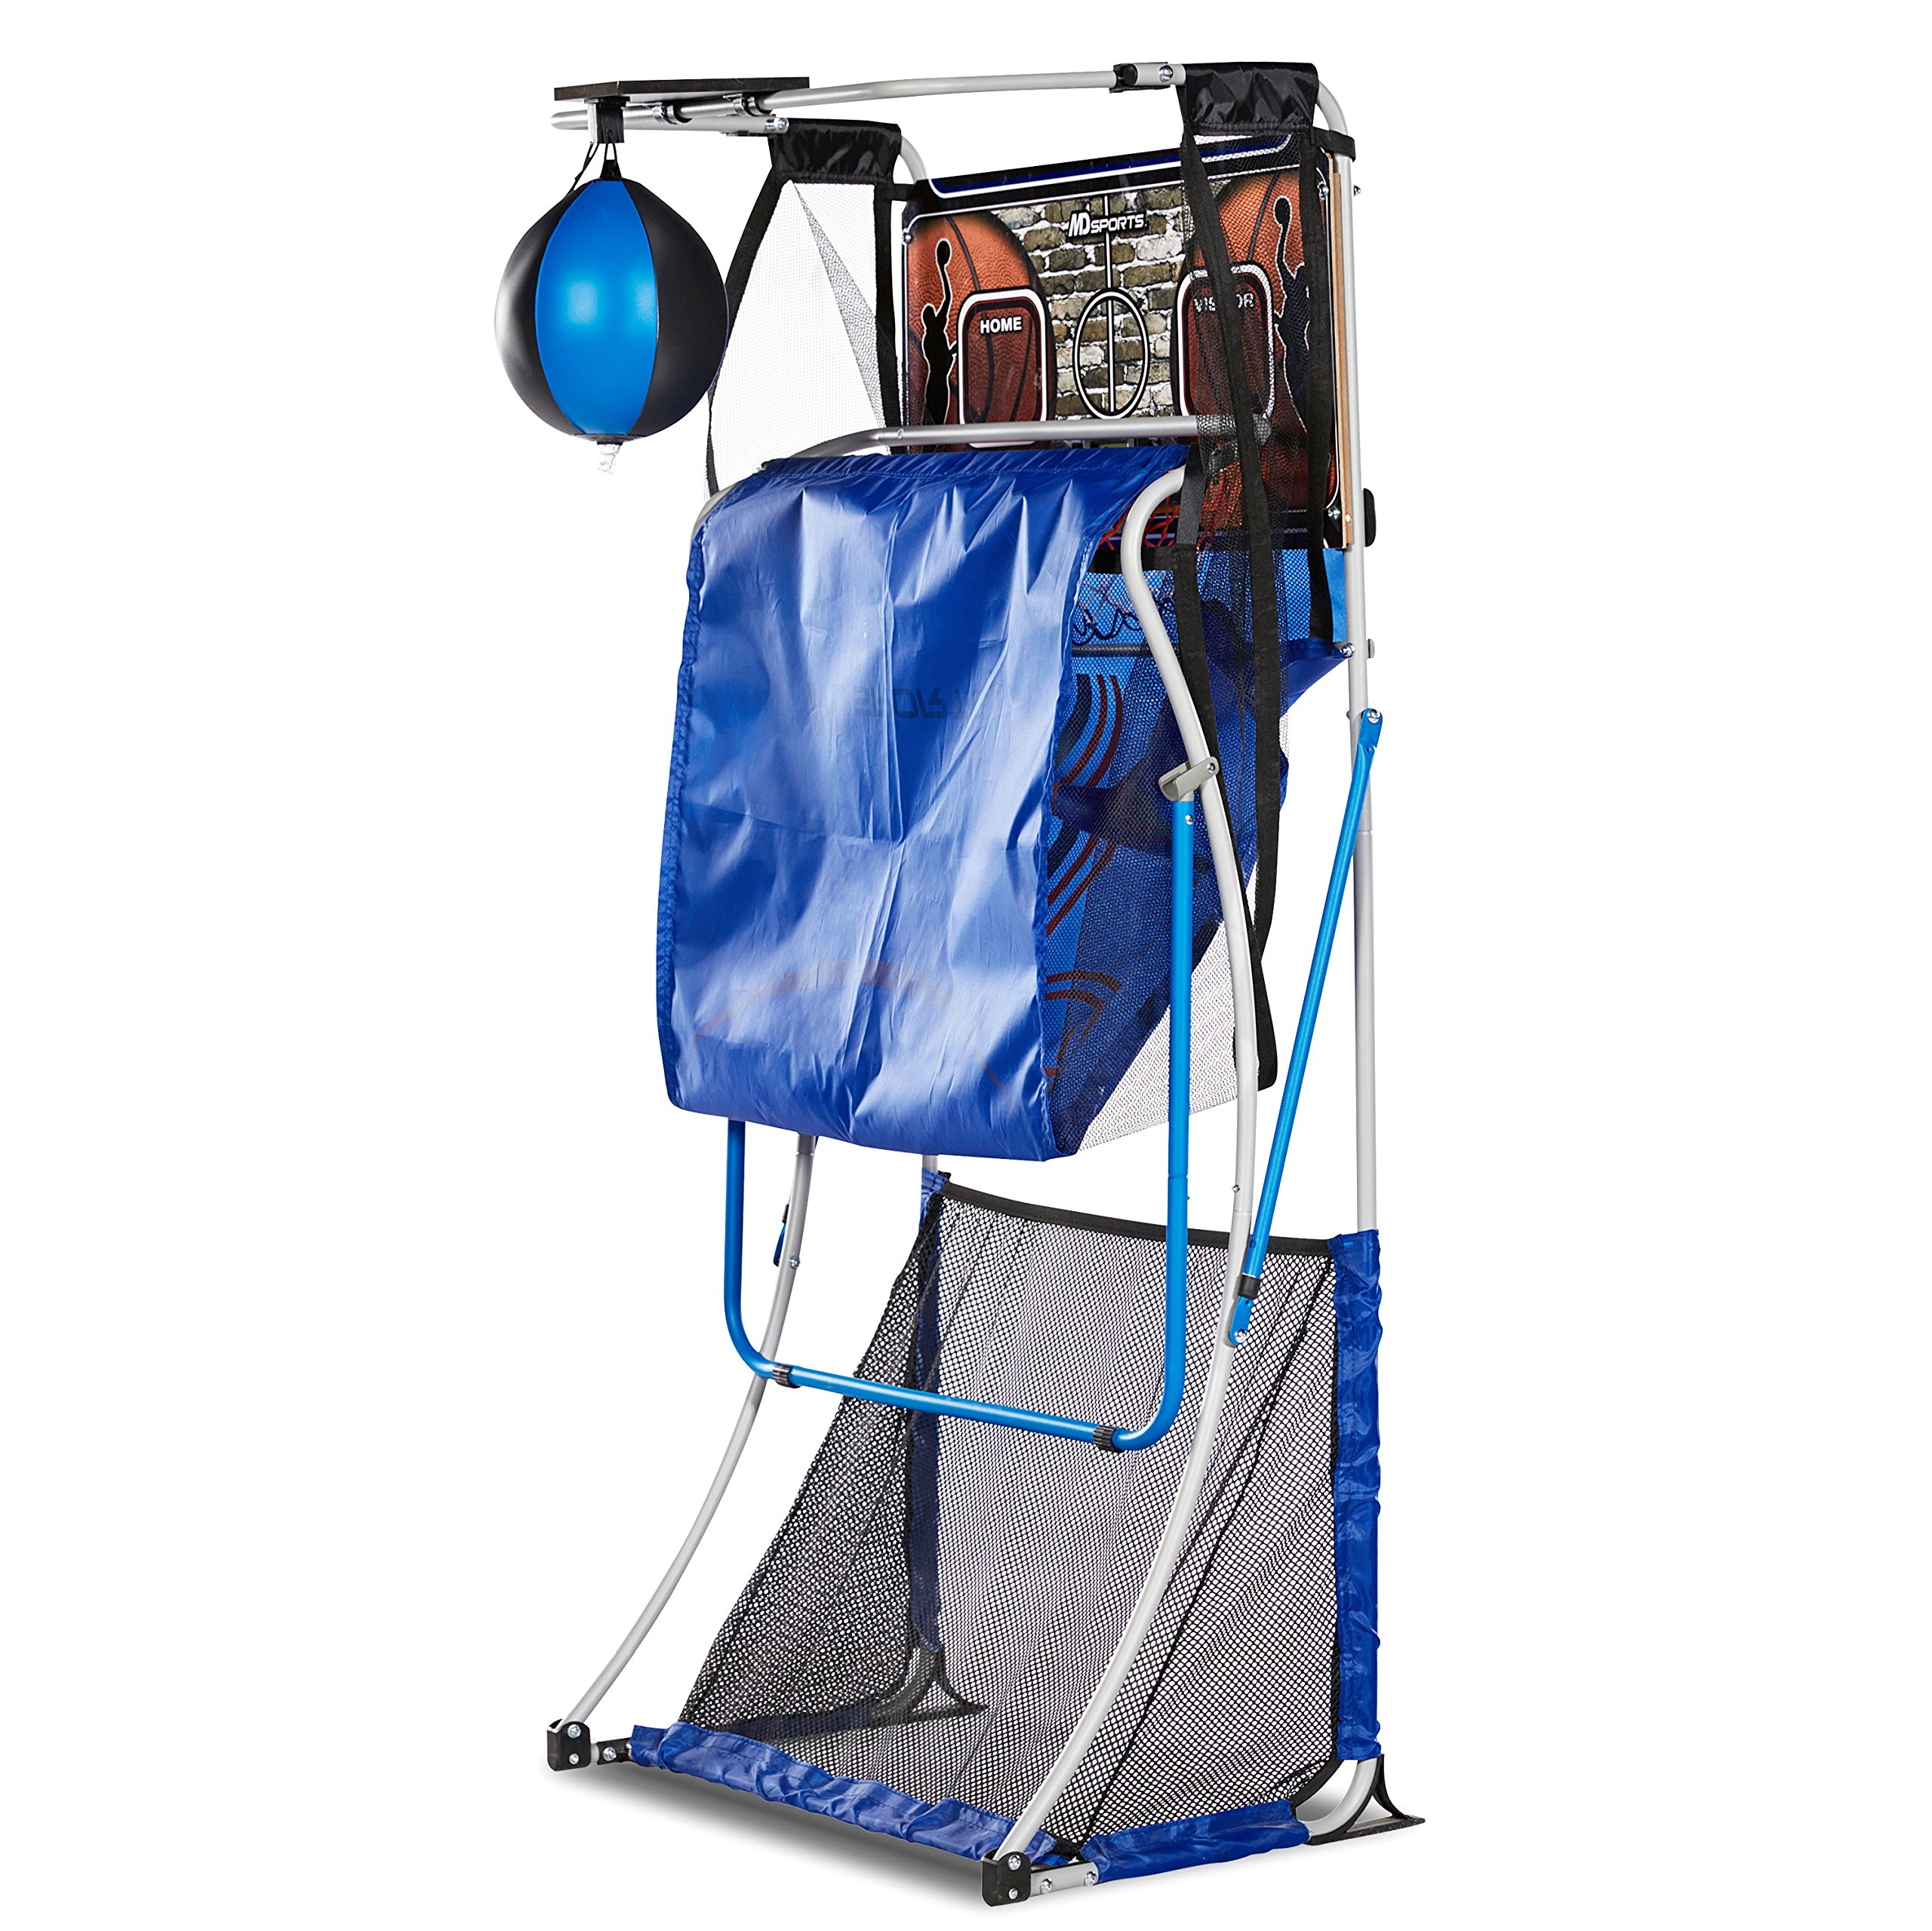 MD Sports BBG019_067M 4 in 1 Junior Basketball Game (Basketball, Soccer, Boxing & KNEE Hockey), Blue by MD Sports (Image #10)